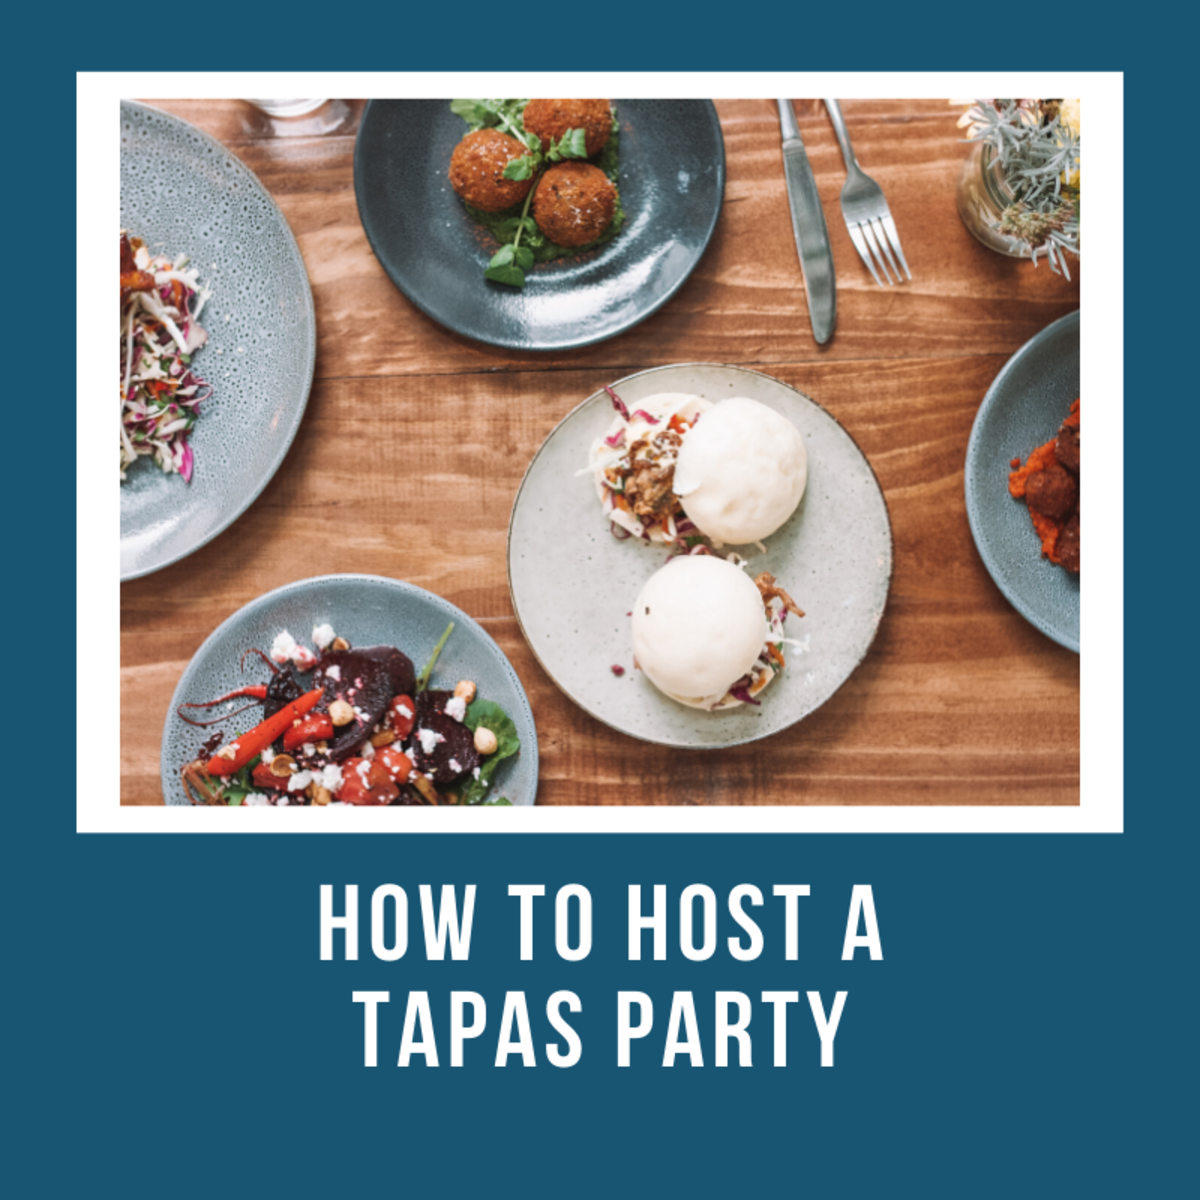 How to Host a Tapas Party With Recipes and Menu Suggestions